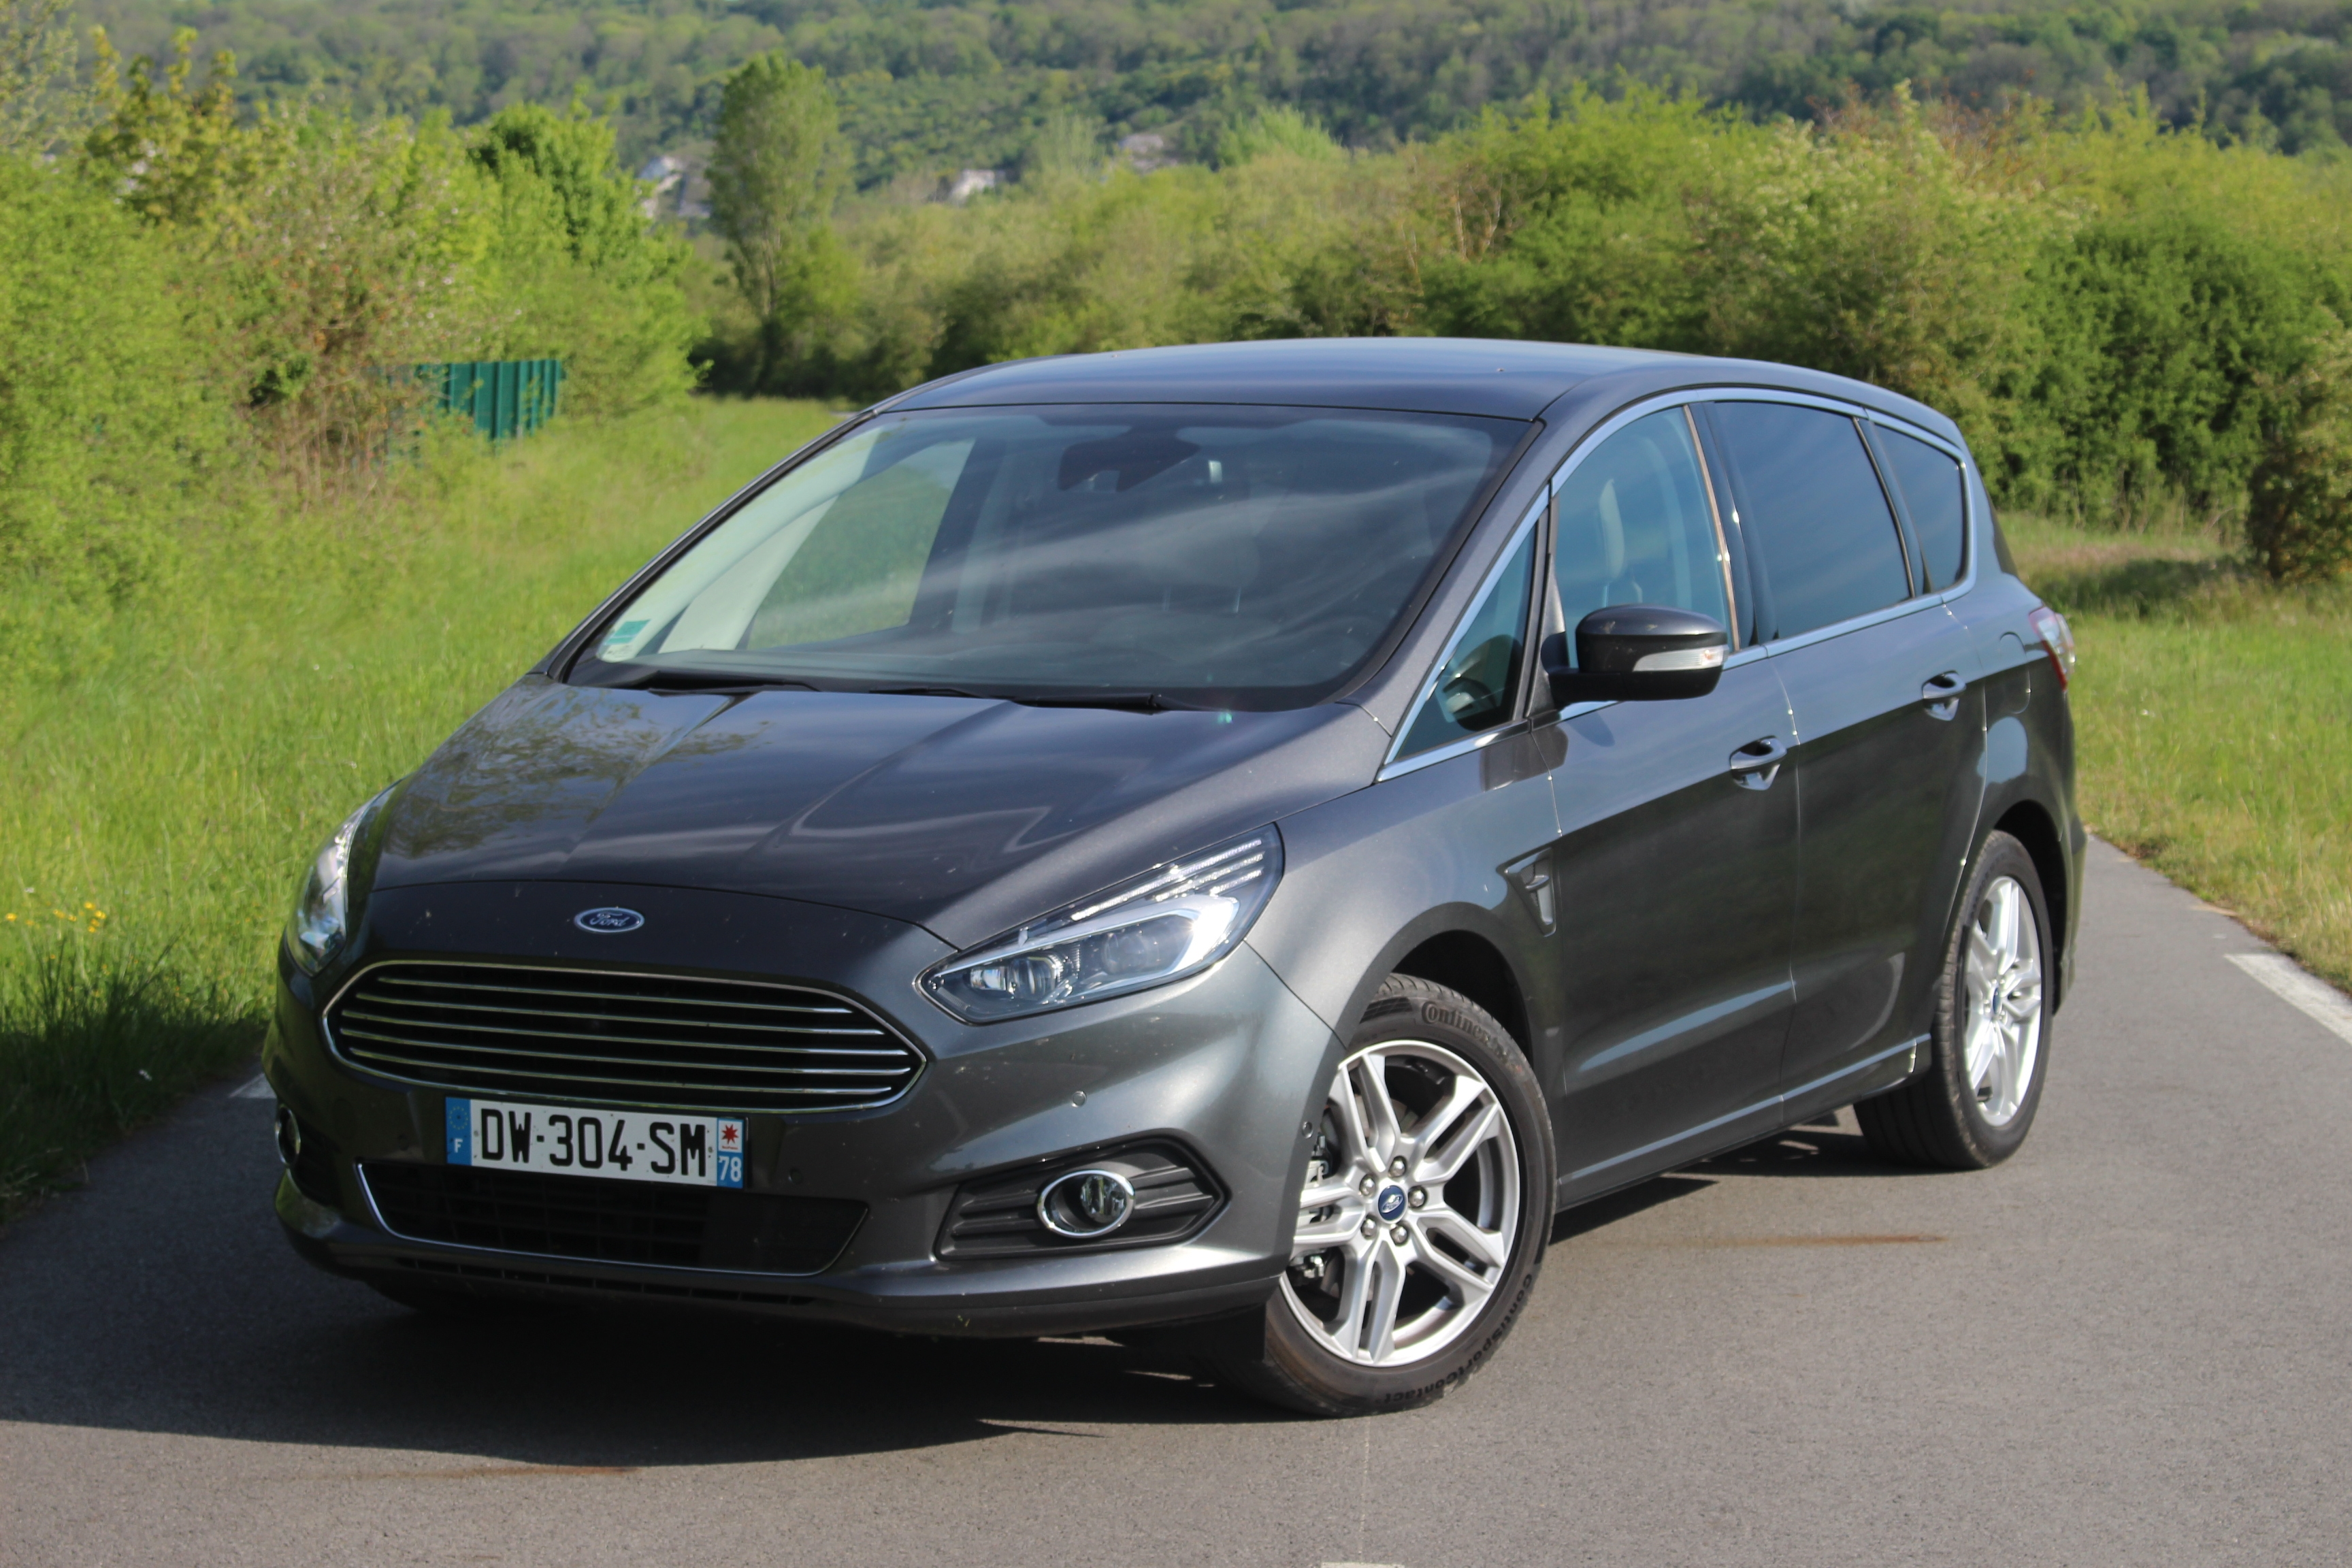 essai ford s max 2 0 tdci 150 awd l 39 immuable. Black Bedroom Furniture Sets. Home Design Ideas